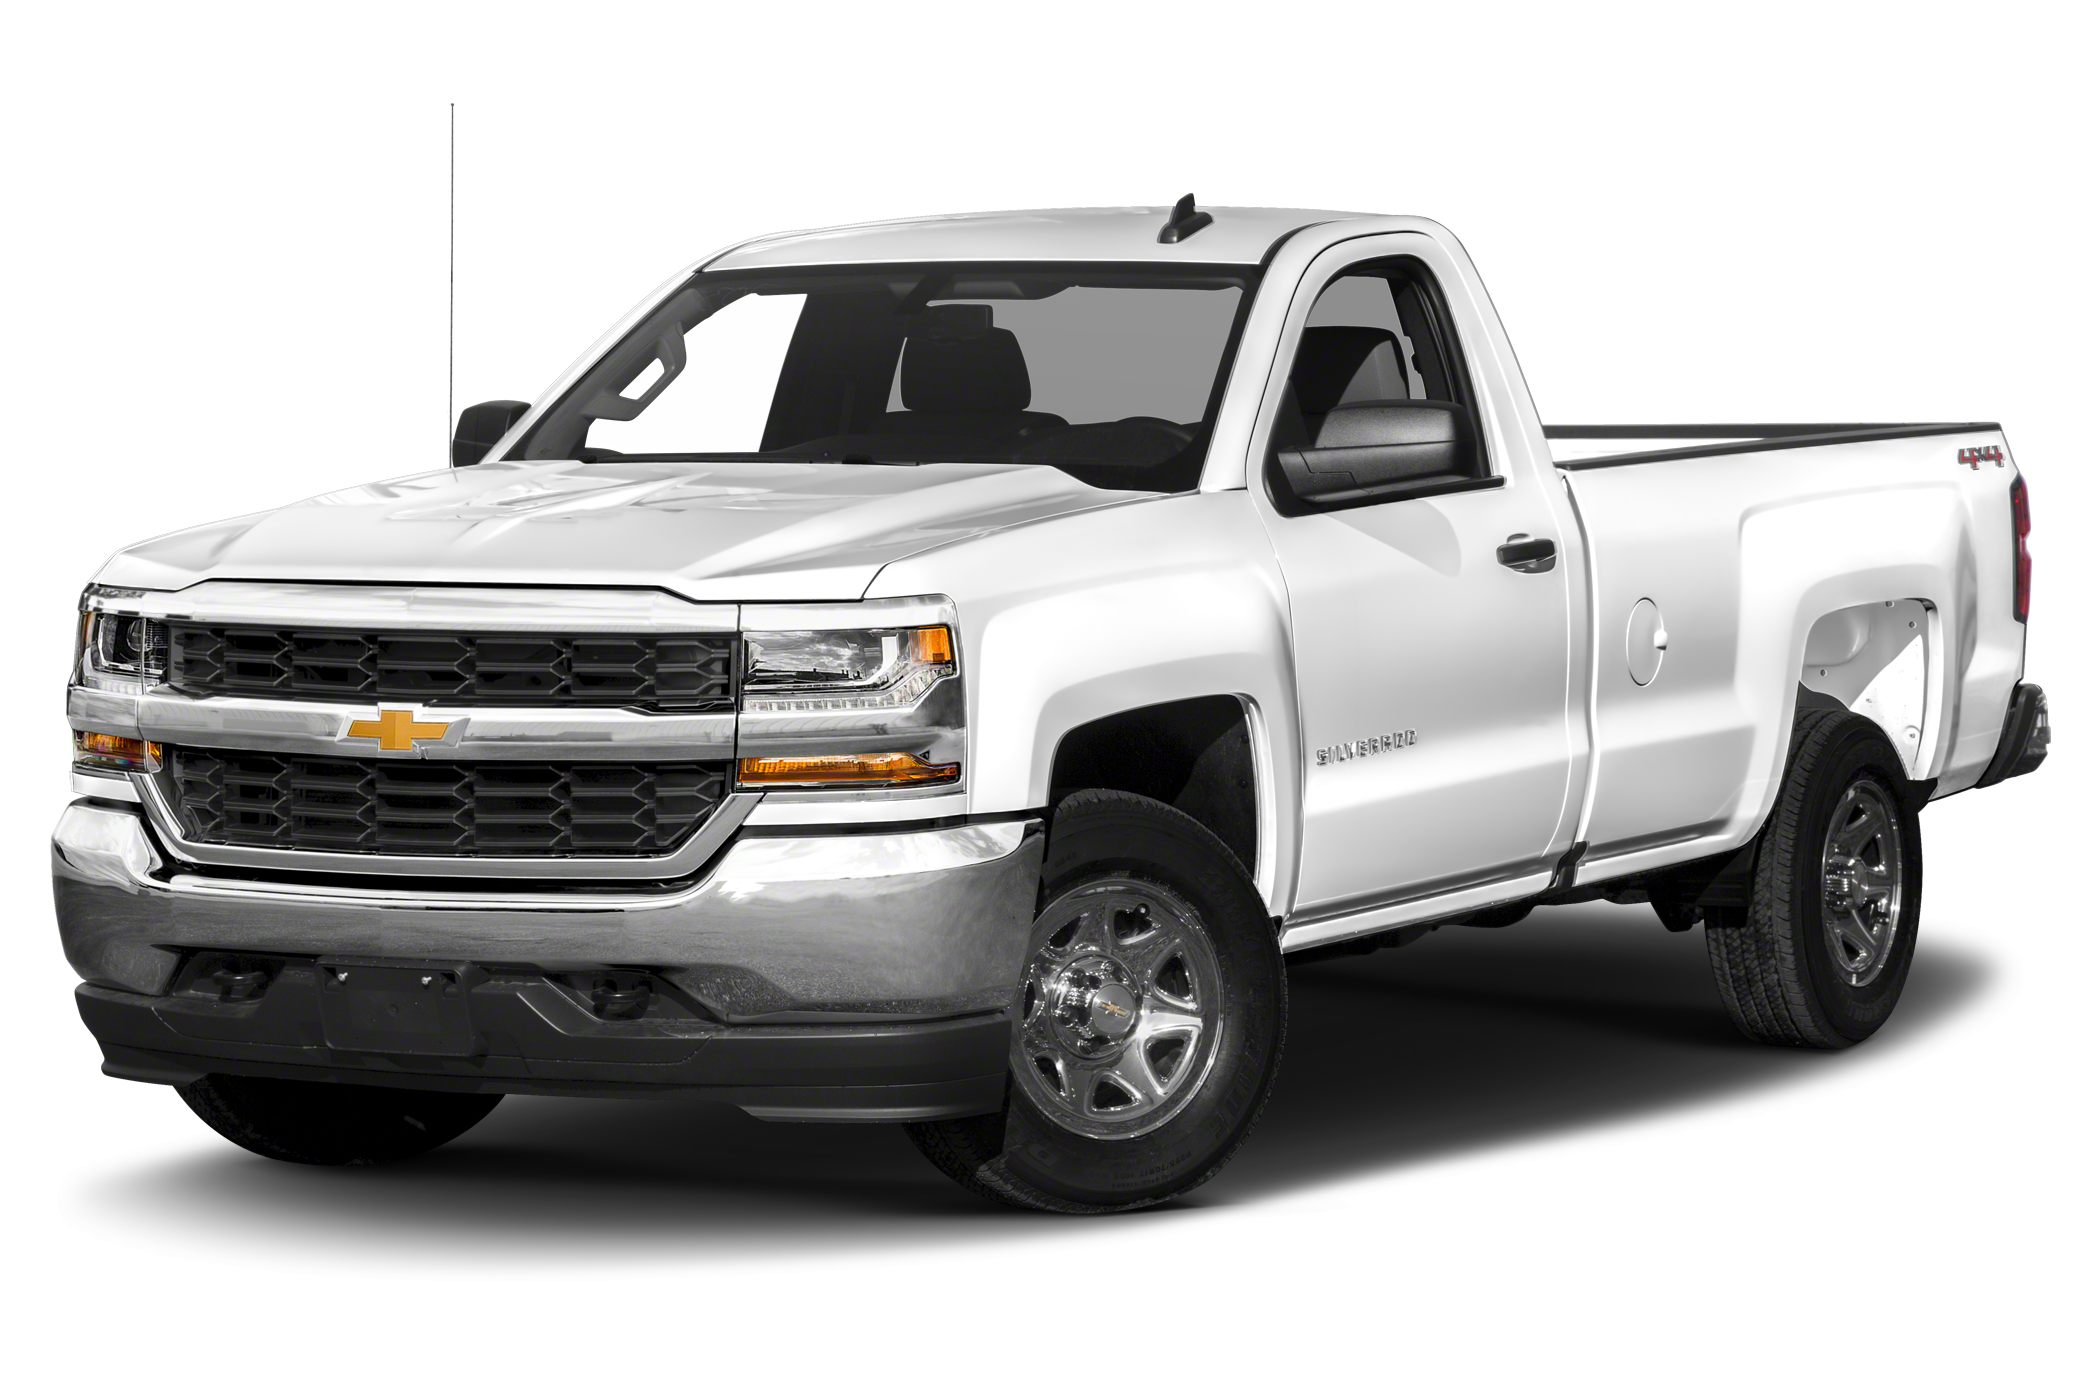 2018 Chevrolet Silverado 1500 LS 4x4 Regular Cab 8 ft. box 133 in. WB